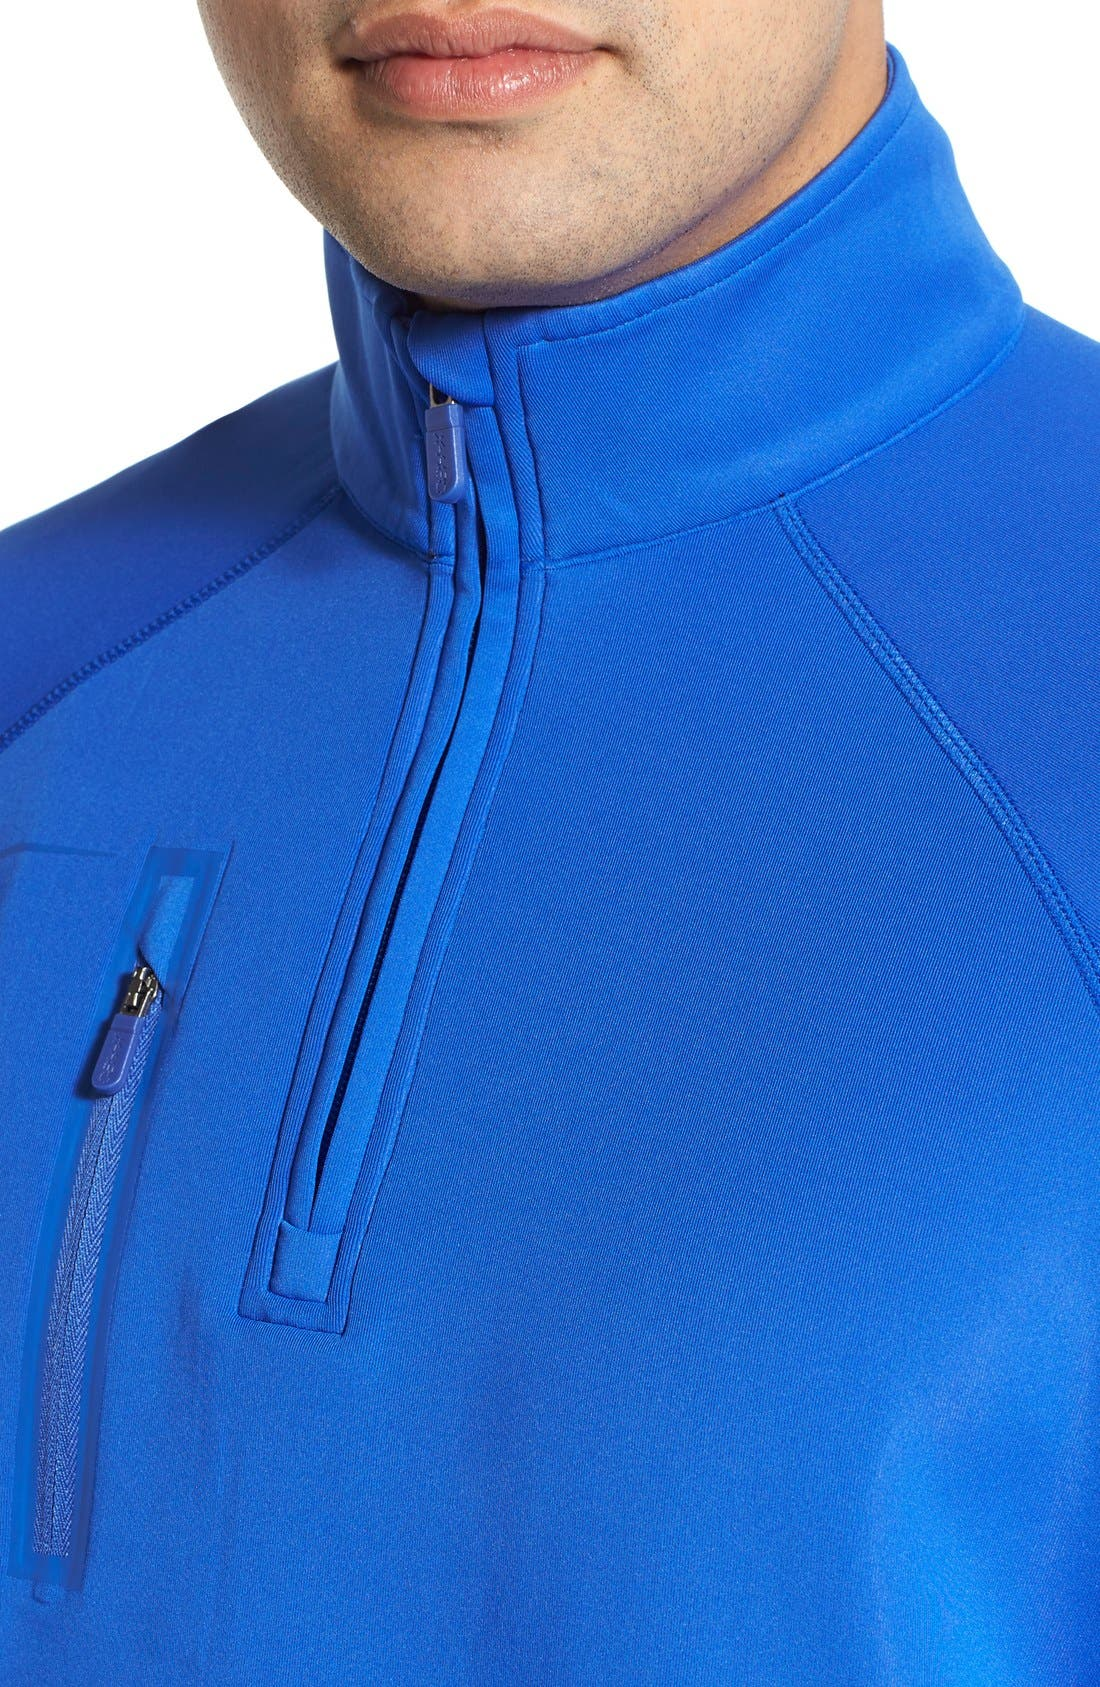 XH2O Crawford Stretch Quarter Zip Golf Pullover,                             Alternate thumbnail 47, color,